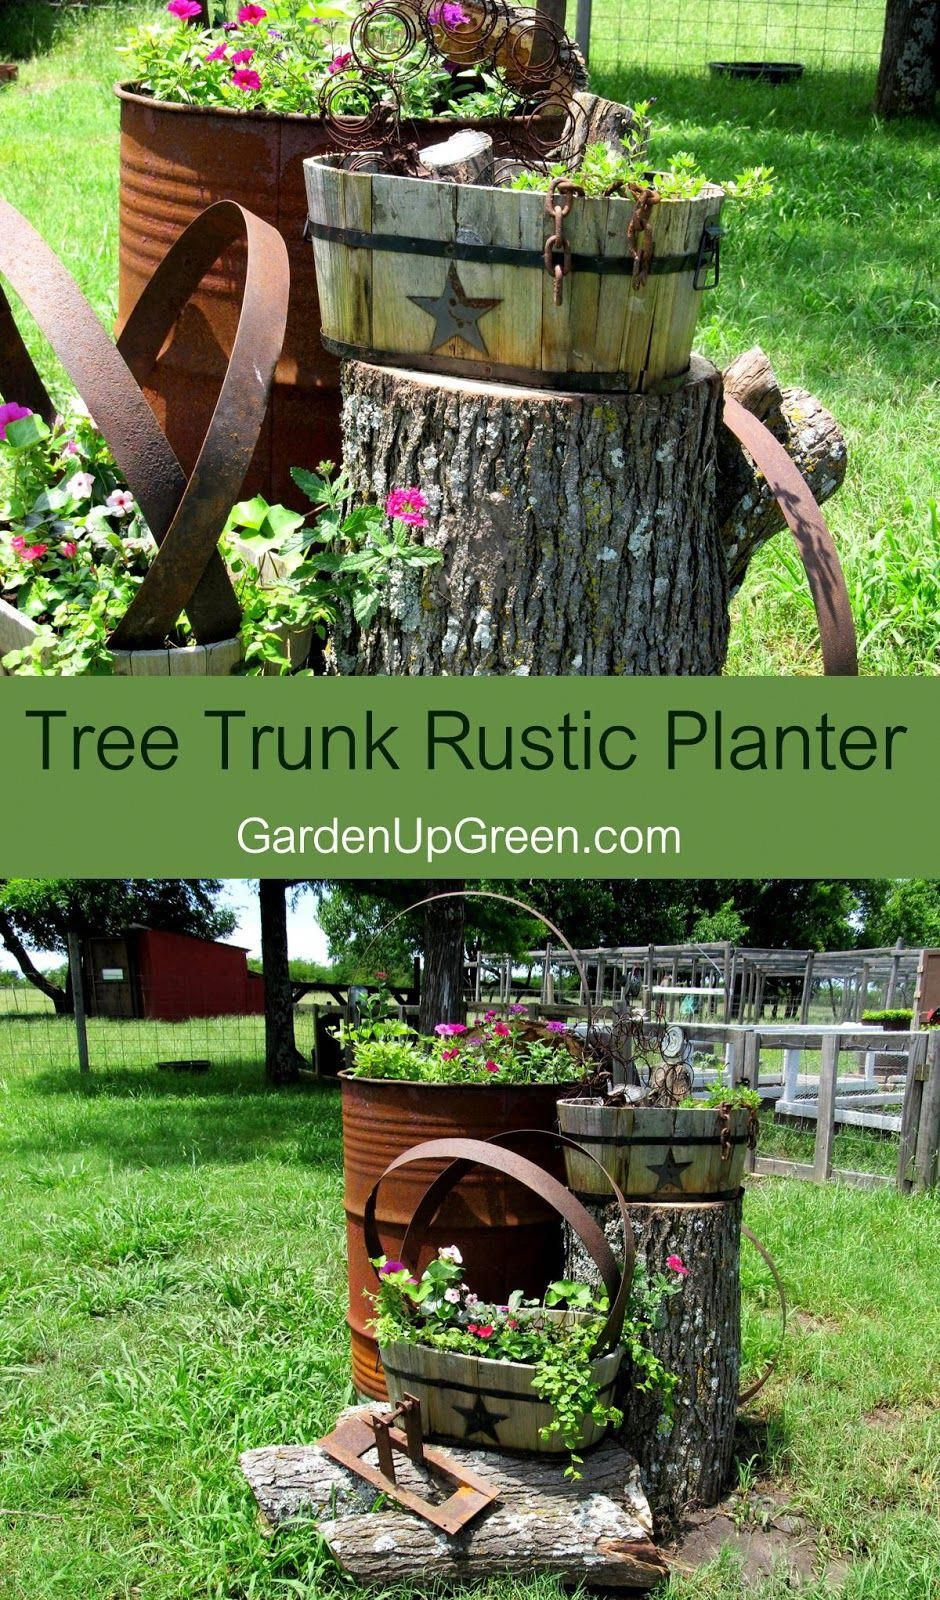 You can create extreme rustic planting fun using barrel